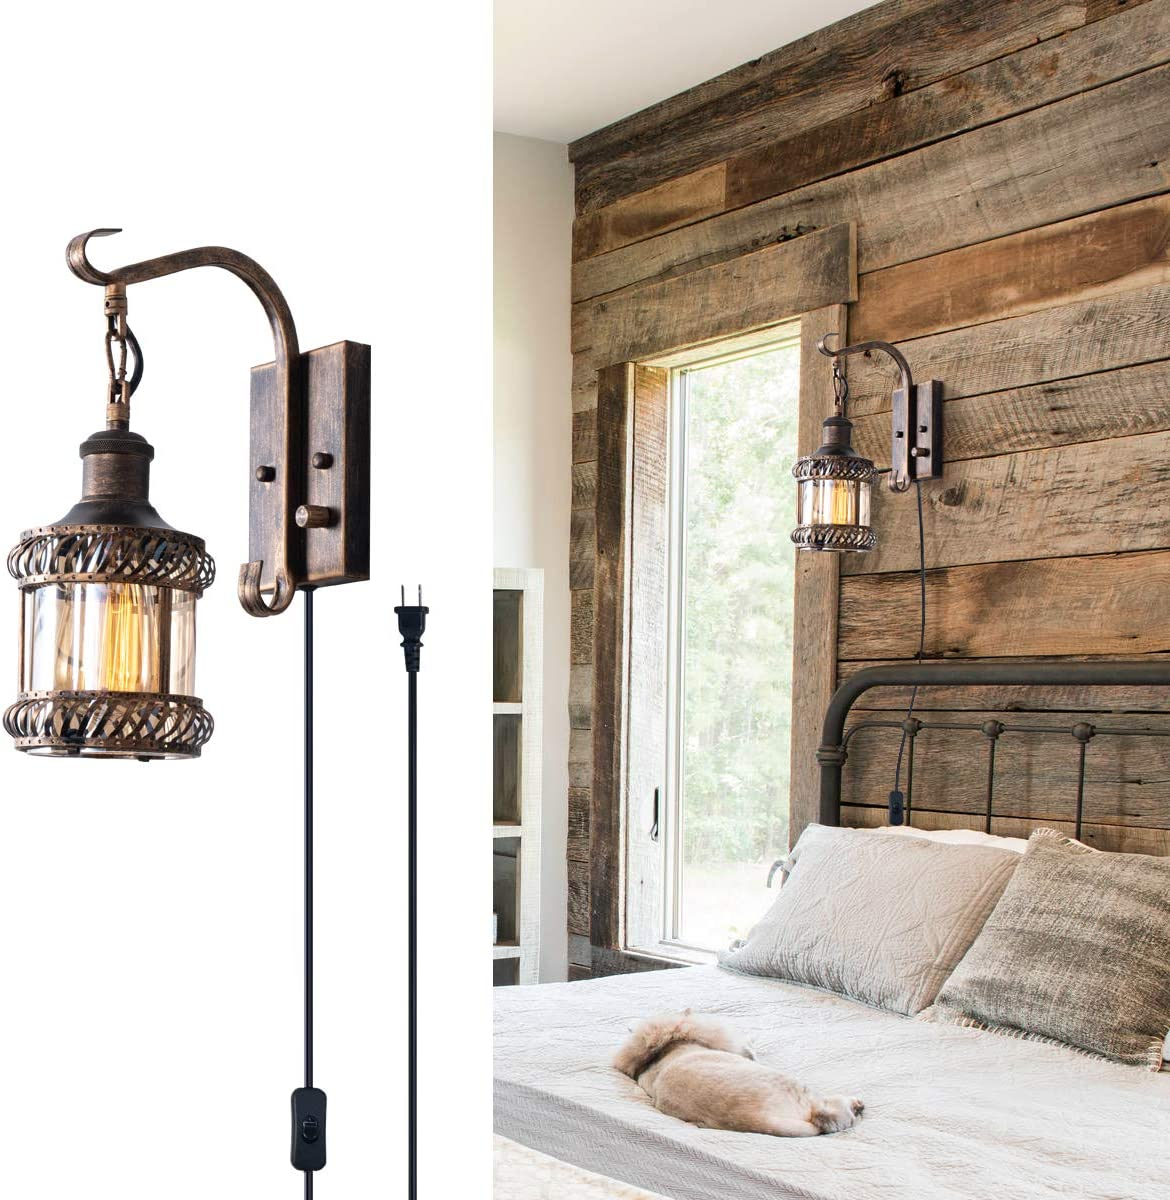 Retro Wall Light Fixtures, 2-in-1 Antique Bronze Vintage Wall Lighting Hardwired Plug in Industrial Lantern Retro Lamp Metal Wall Sconce for Bedside Bedroom Home Dining Room(1 Pack)